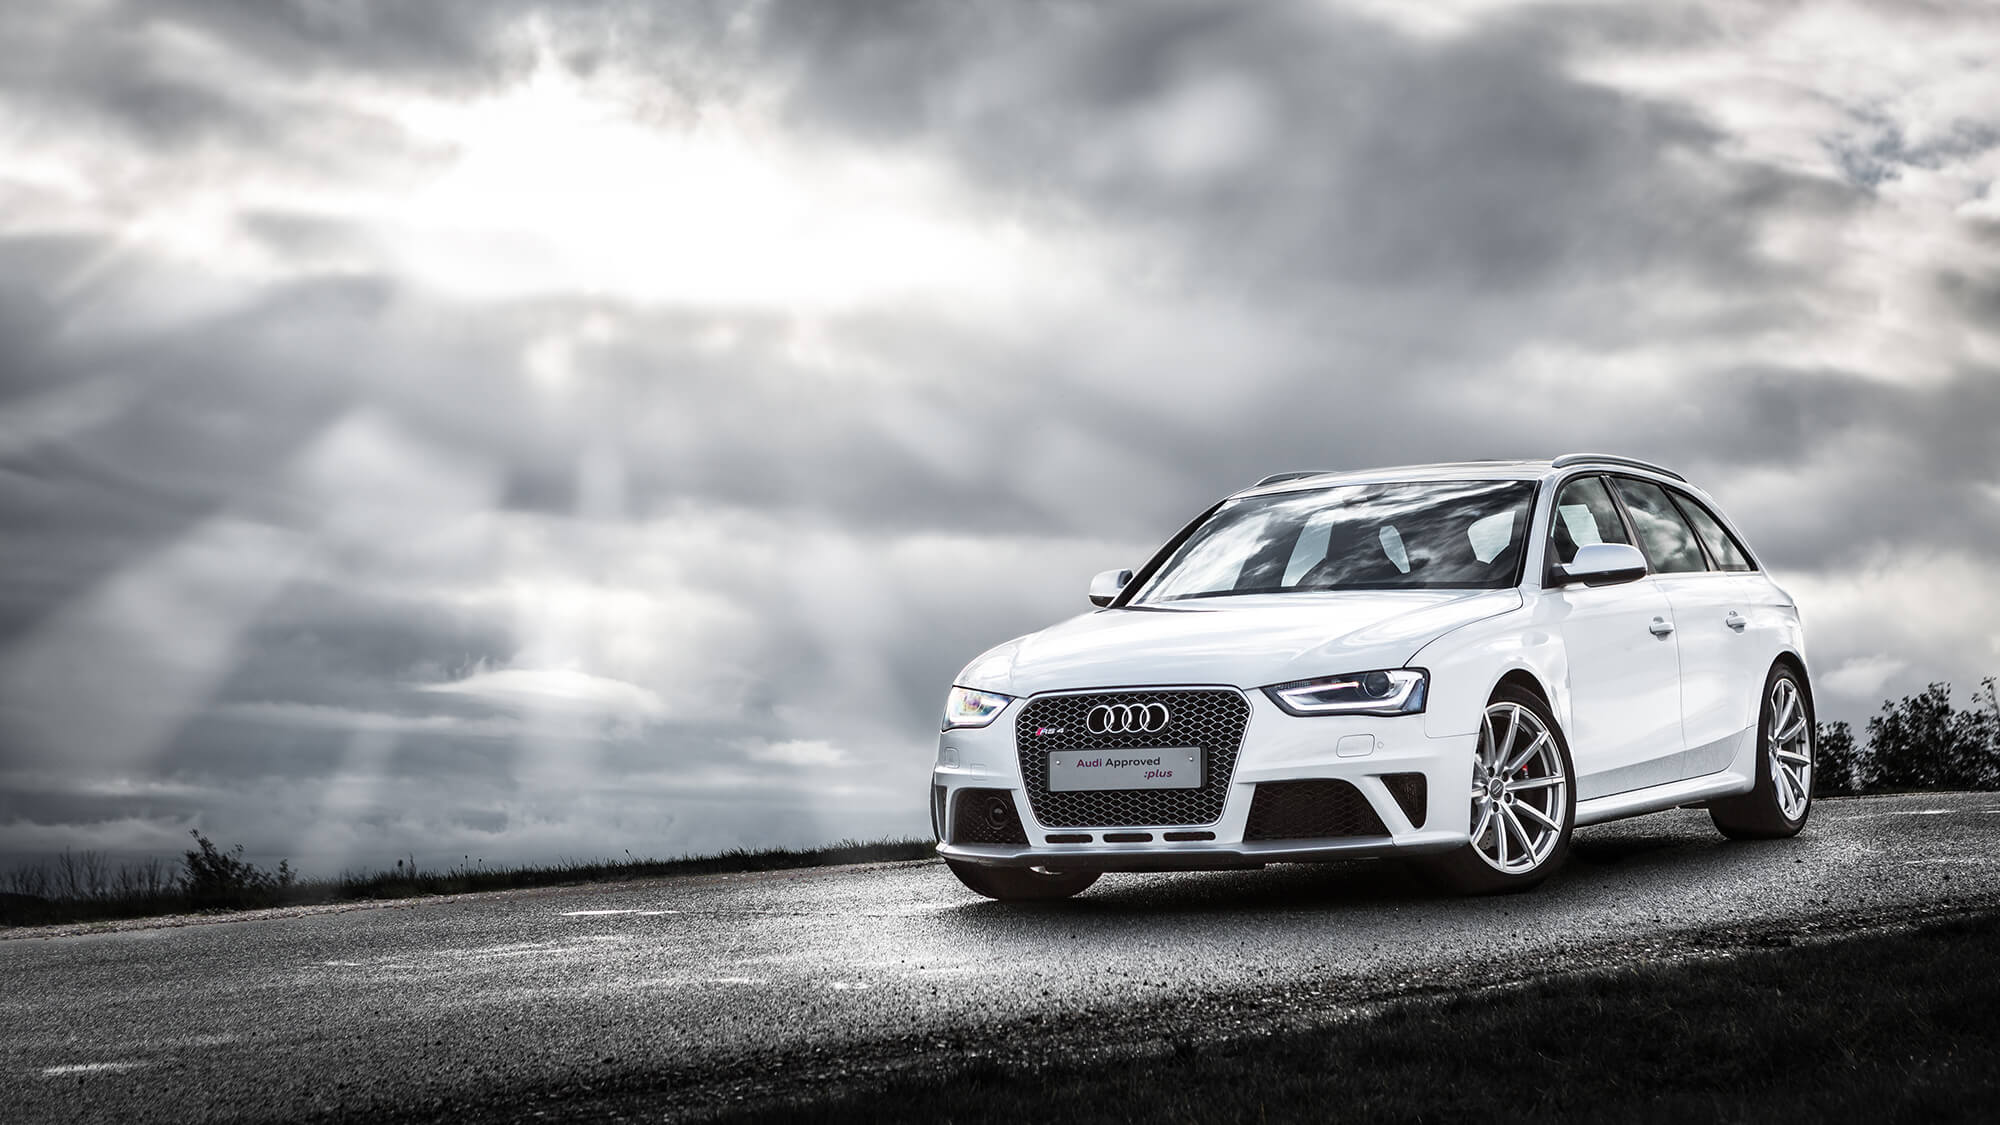 White Audi RS4 Avant - photo taken in Aalborg, Denmark by We Shoot Cars